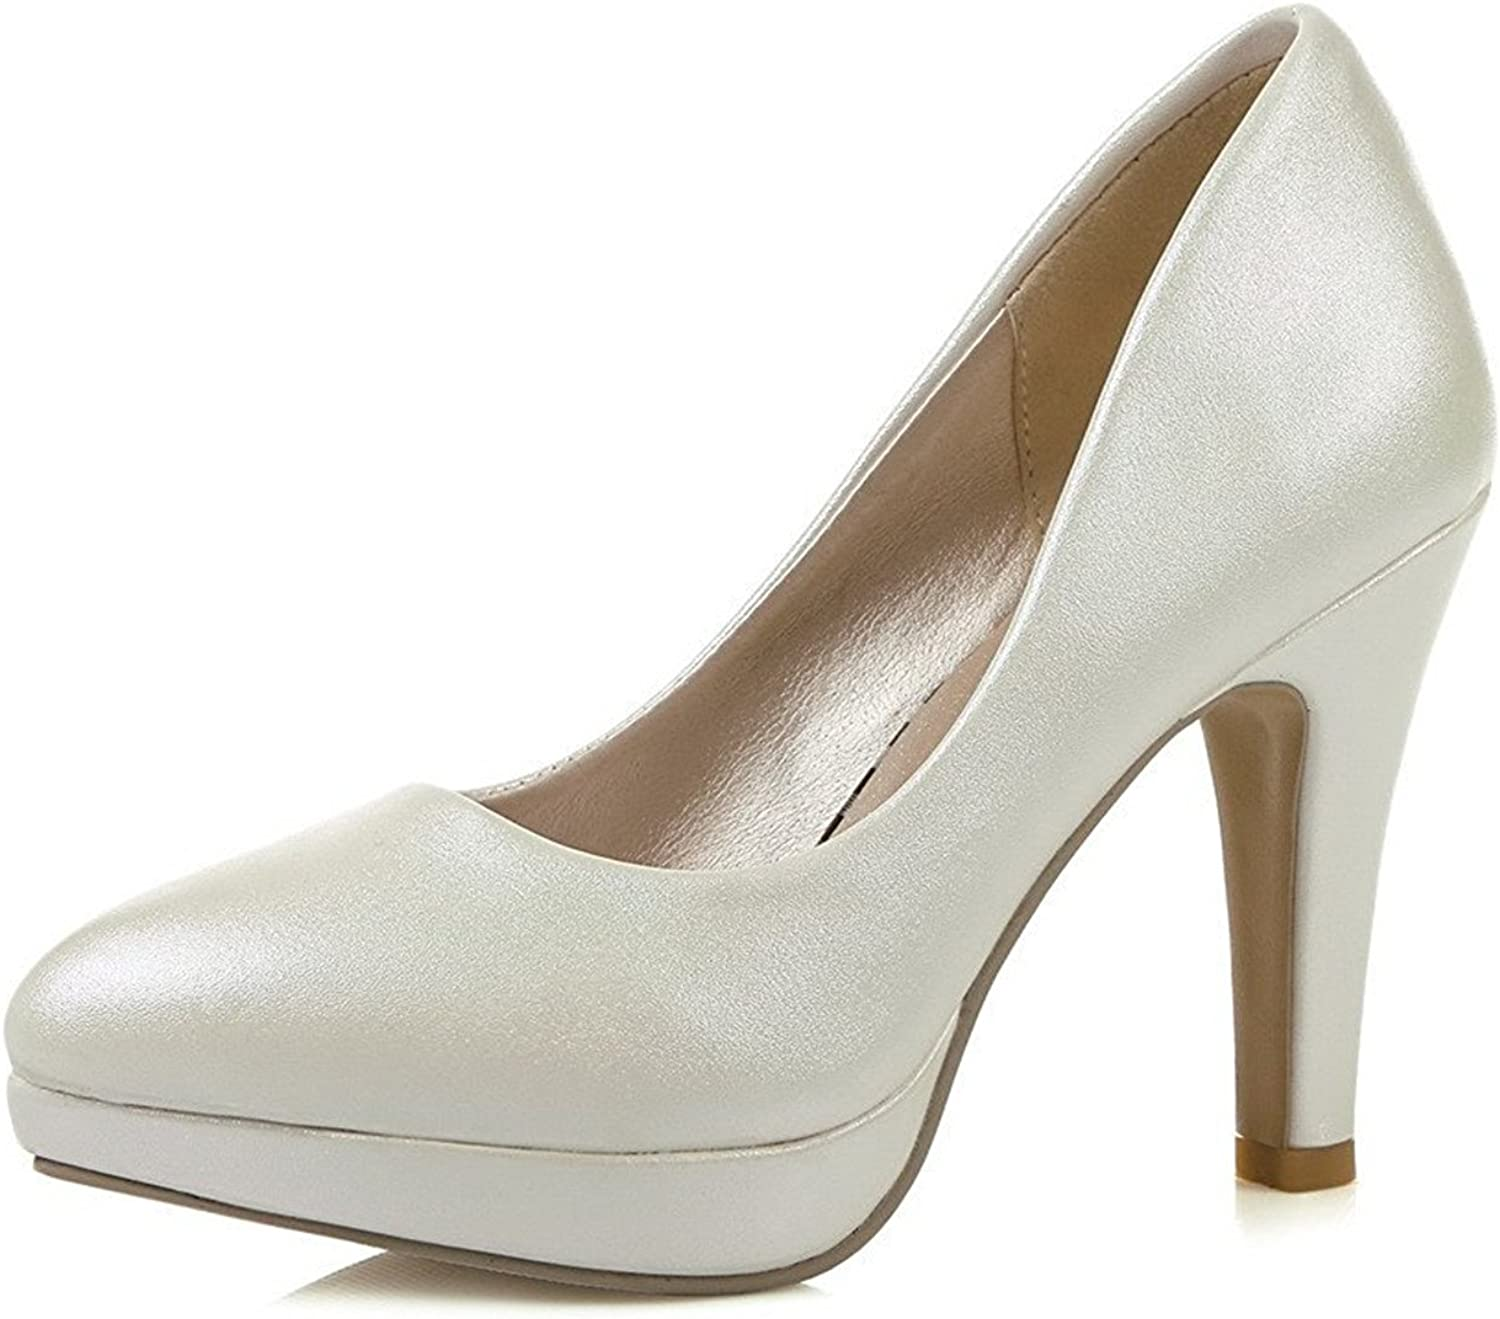 Tirahse Comfortable Women's High-Heels Solid Pull-on Patent Leather Pointed Closed Toe Pumps-shoes